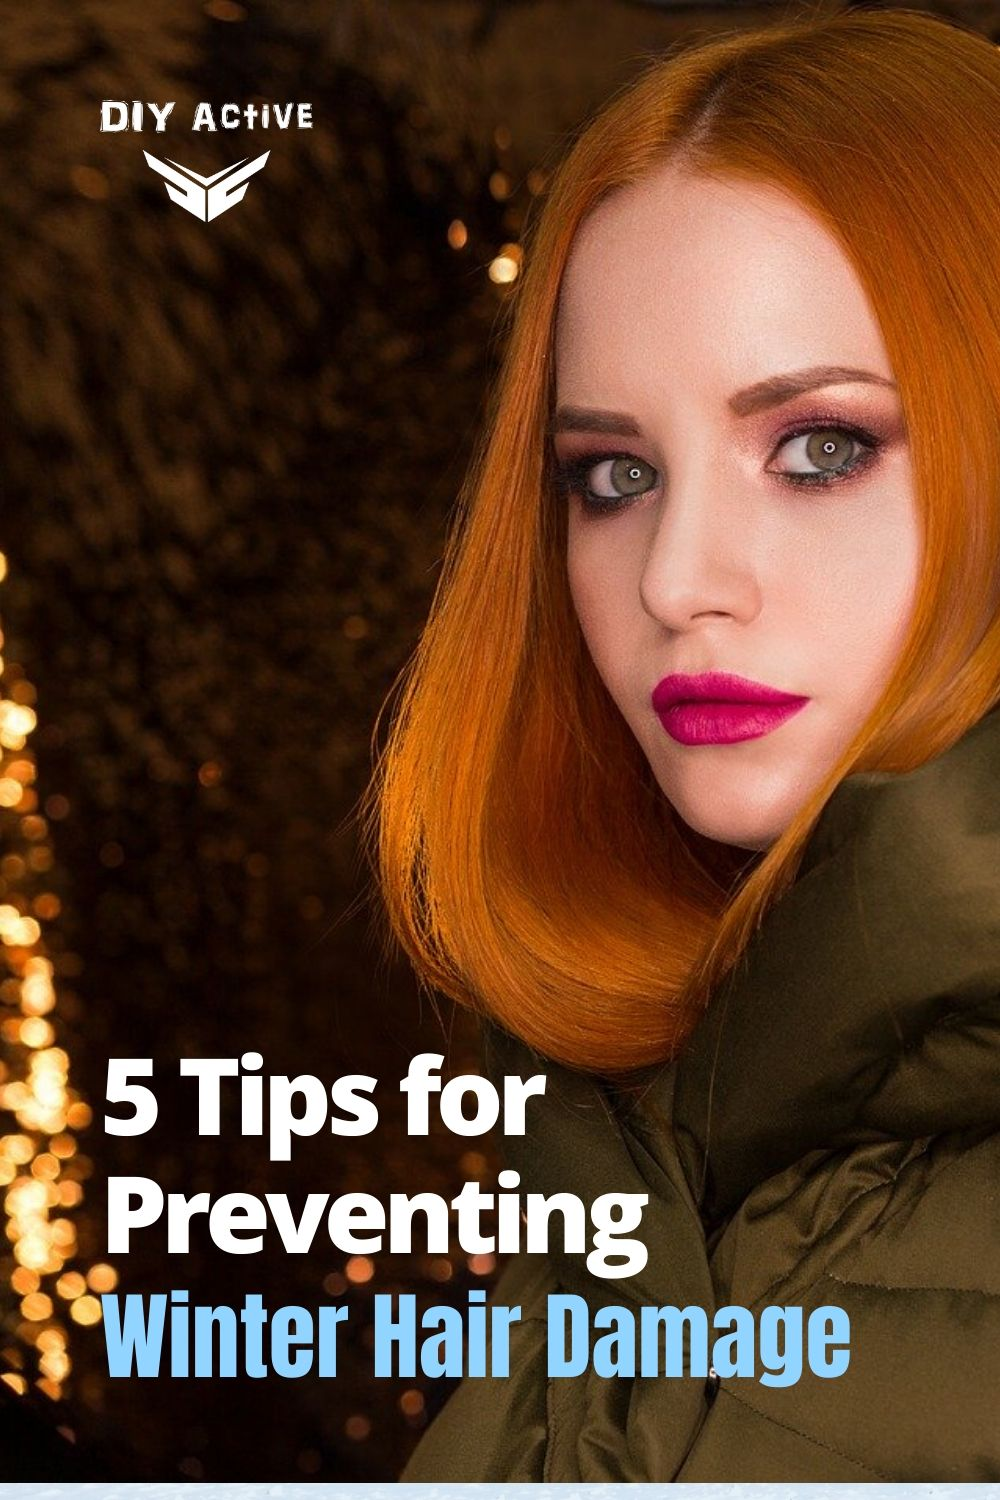 5 Tips for Preventing Winter Hair Damage